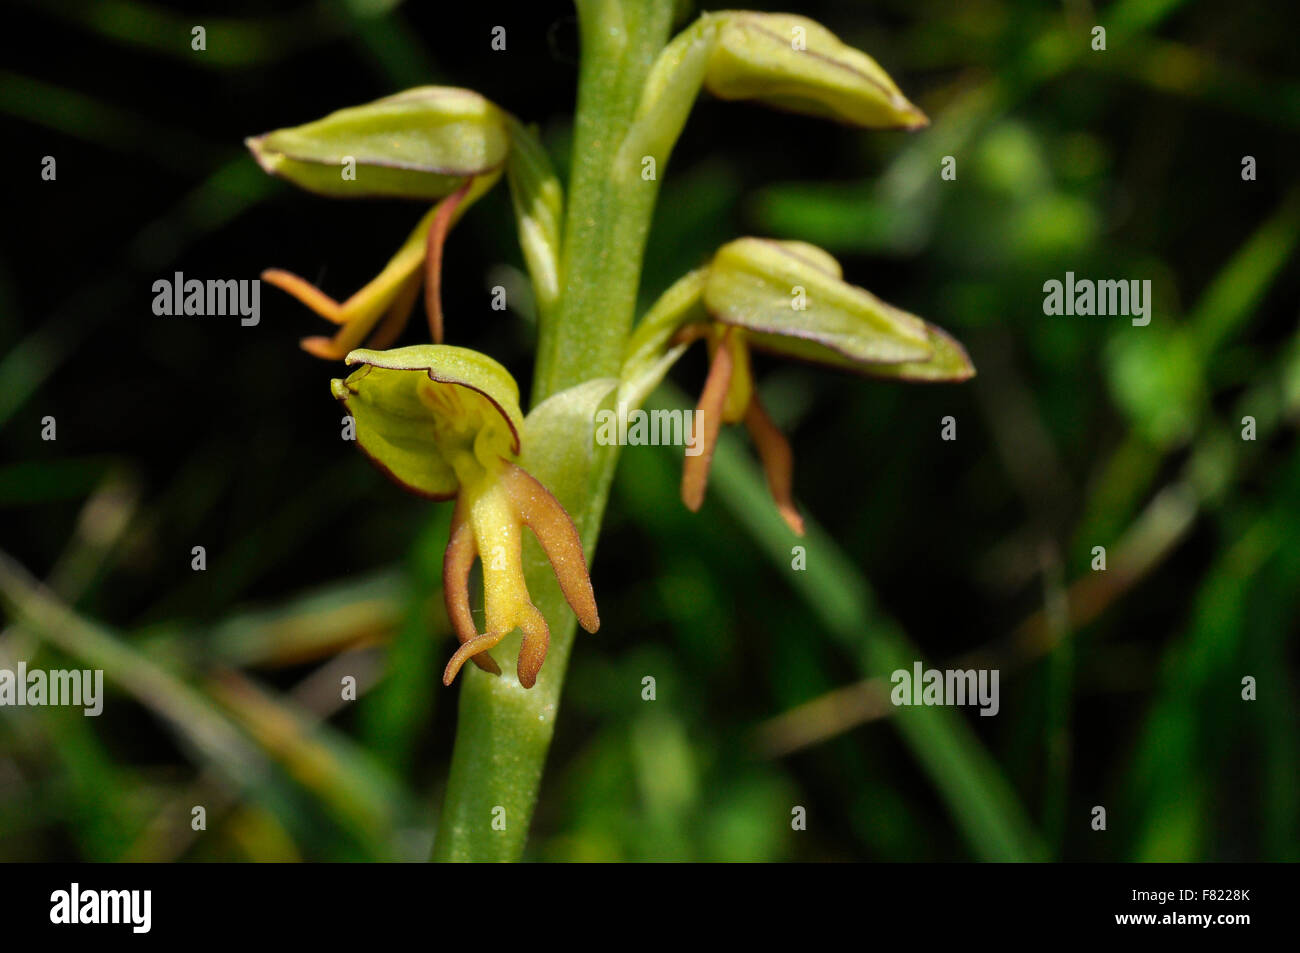 Man Orchid,Orchis anthropophora,close up, endangered, Flowers yellow green, Wiltshire,UK - Stock Image